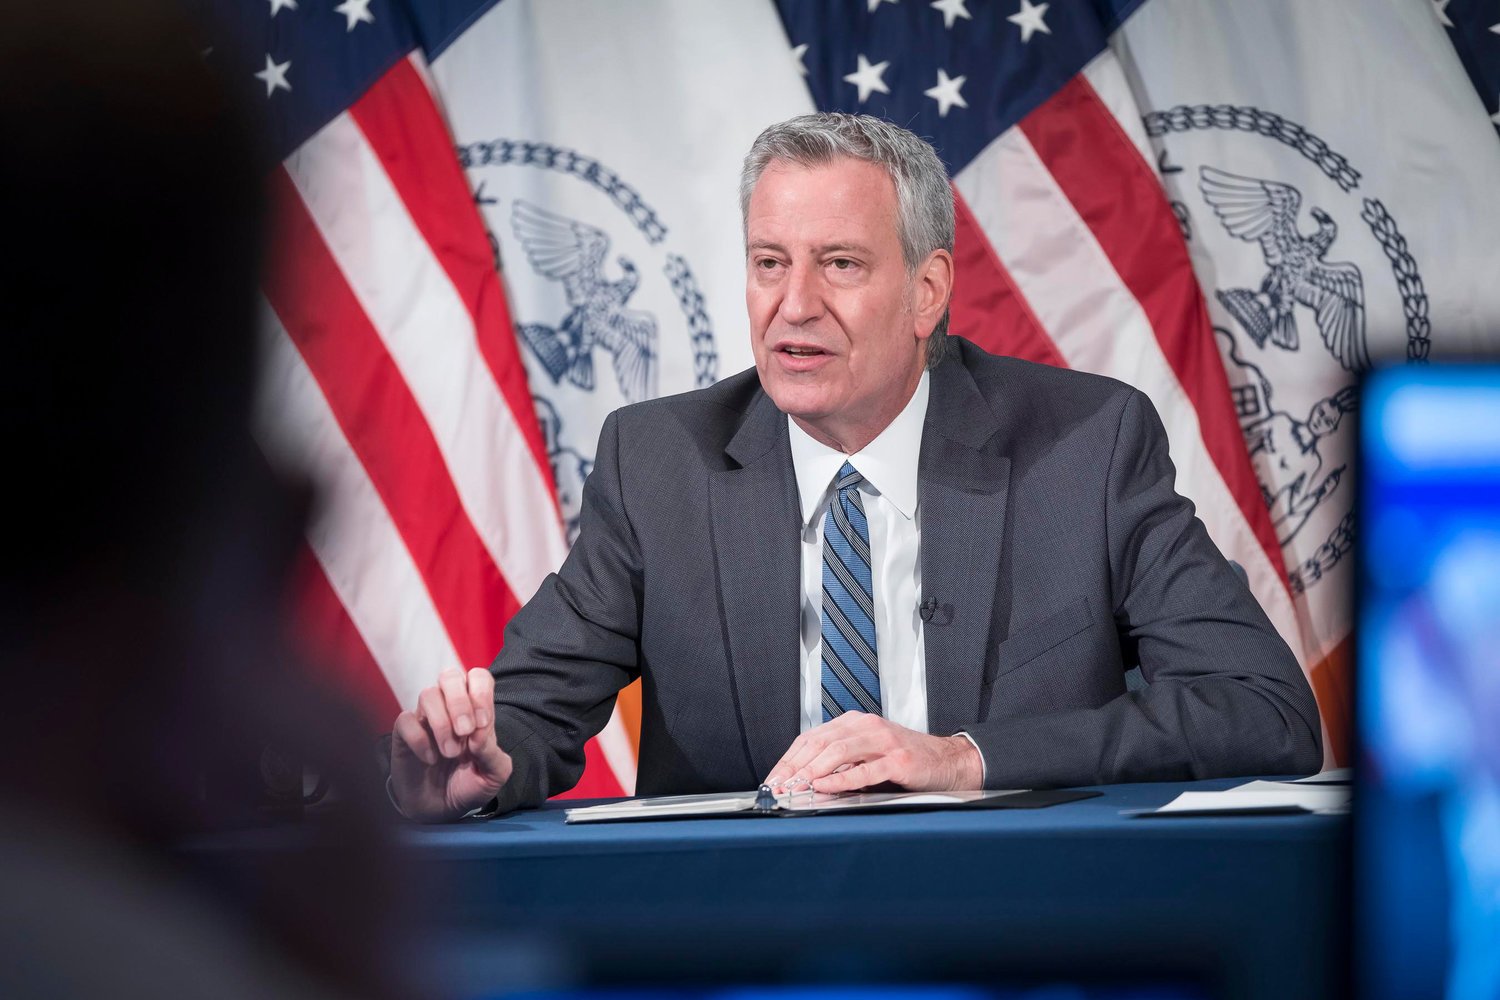 Mayor Bill deBlasio announced high school buildings would reopen March 22. This marks the first time all buildings will be allowed to have in-person classes since a system wide closure in November.